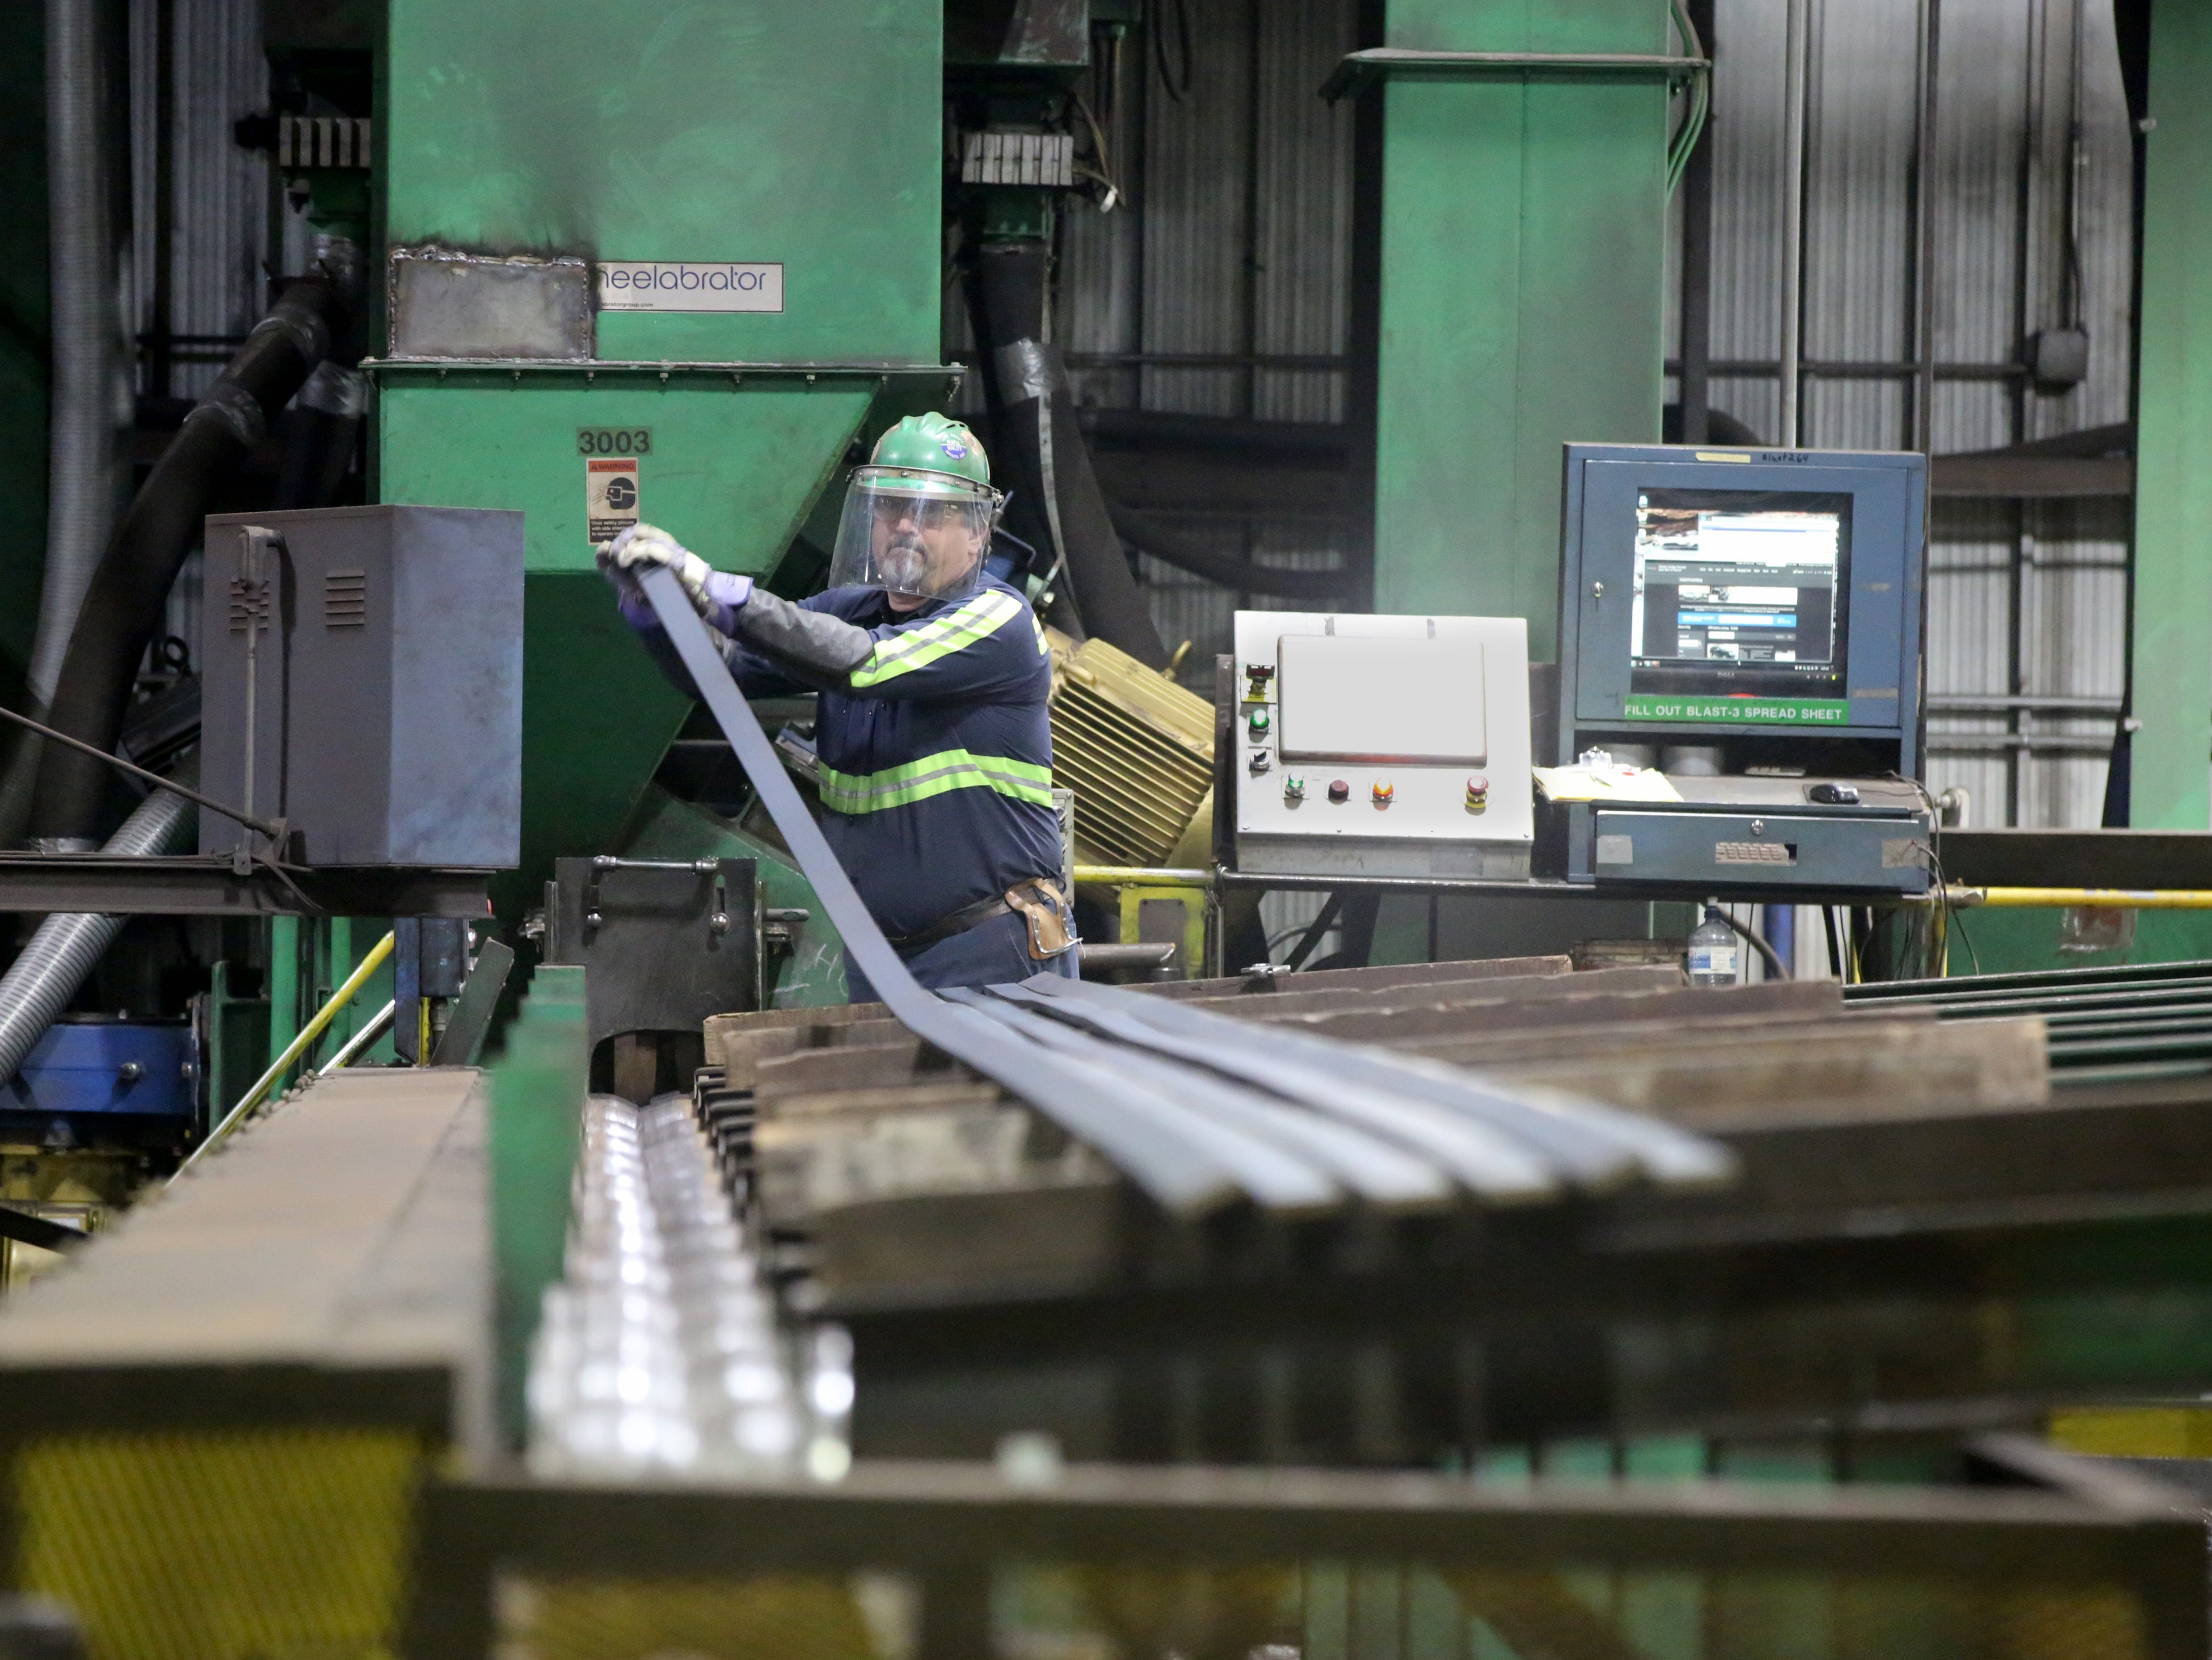 Norm Schultz, a Nucor blaster operator, feeds steel bars to clean for processing.